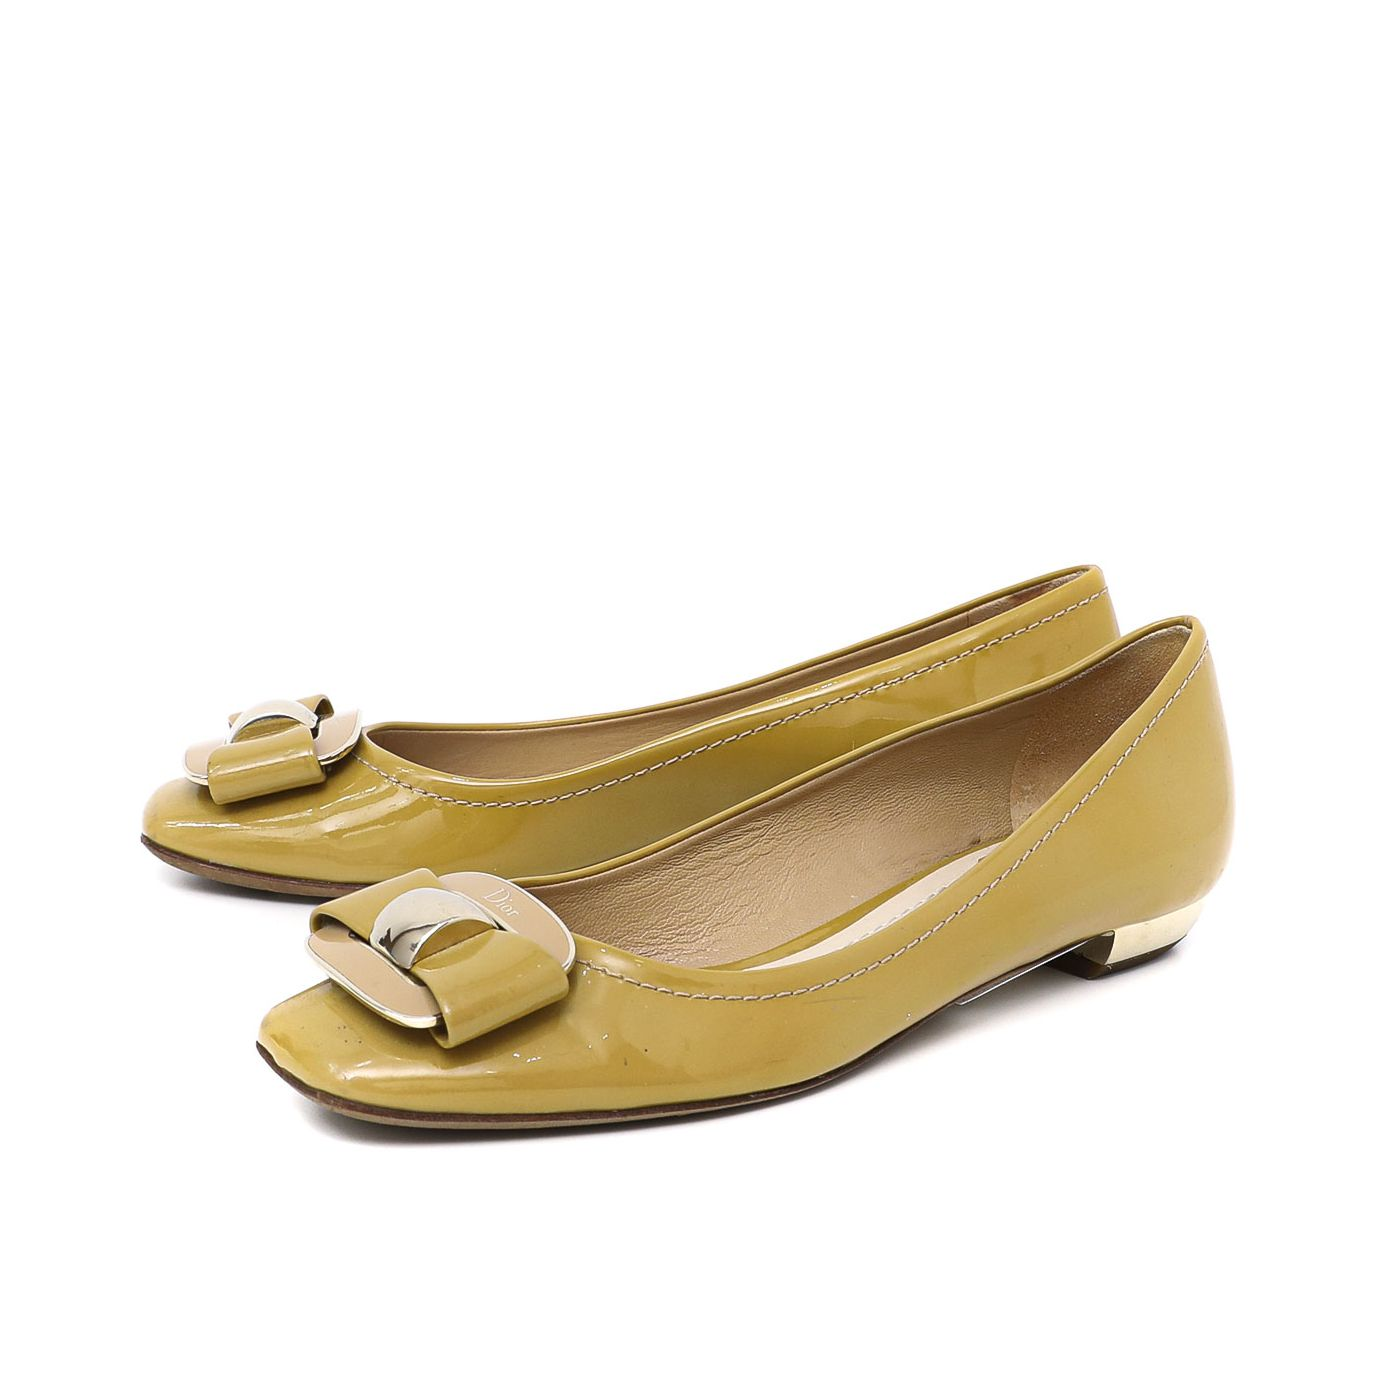 Dior Flaxen Patent Square Toe Bow Flats